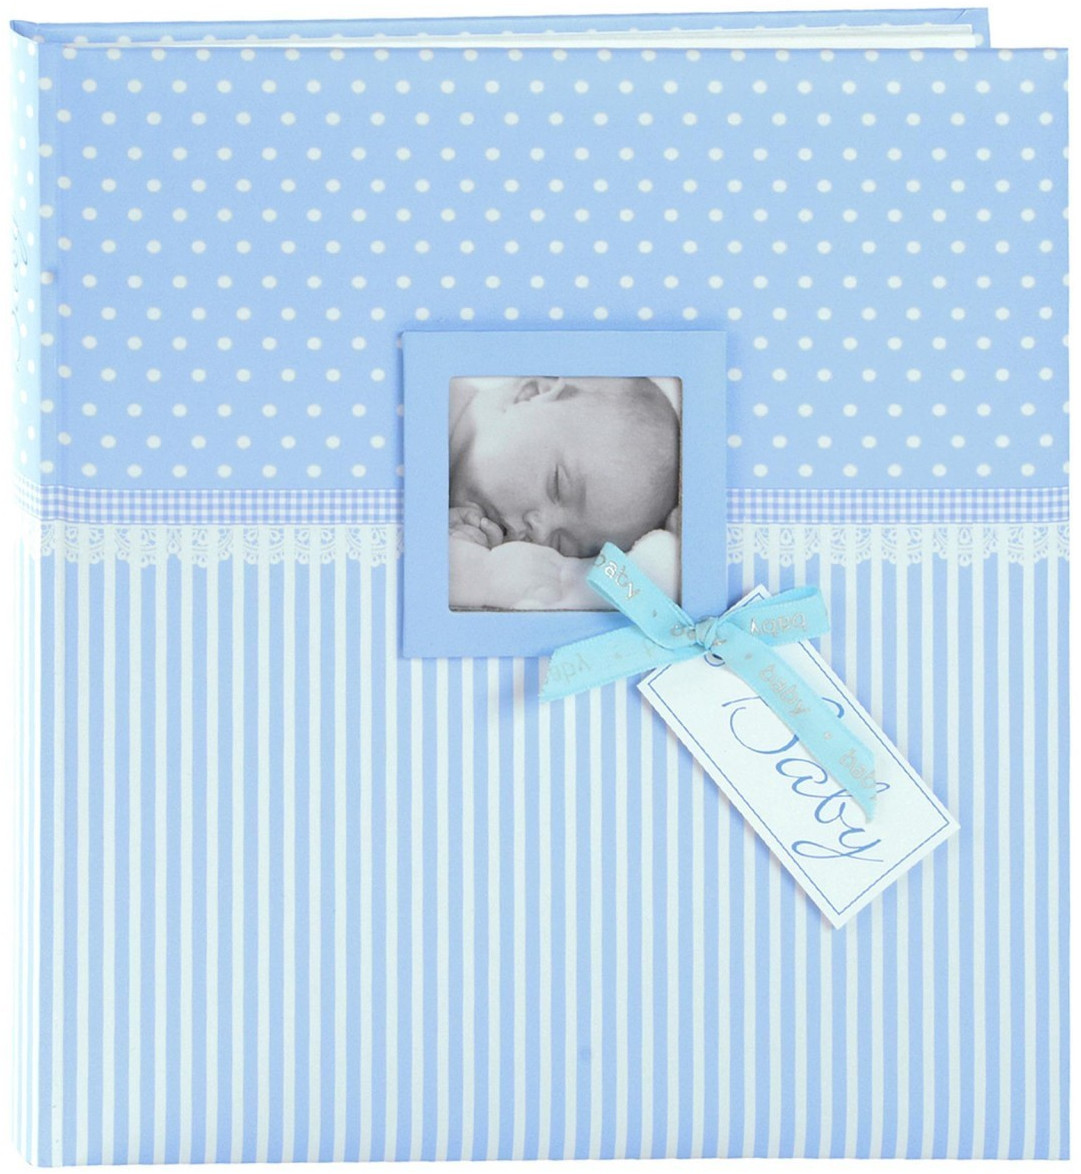 Image of Goldbuch Babyalbum Sweetheart 30x31/60